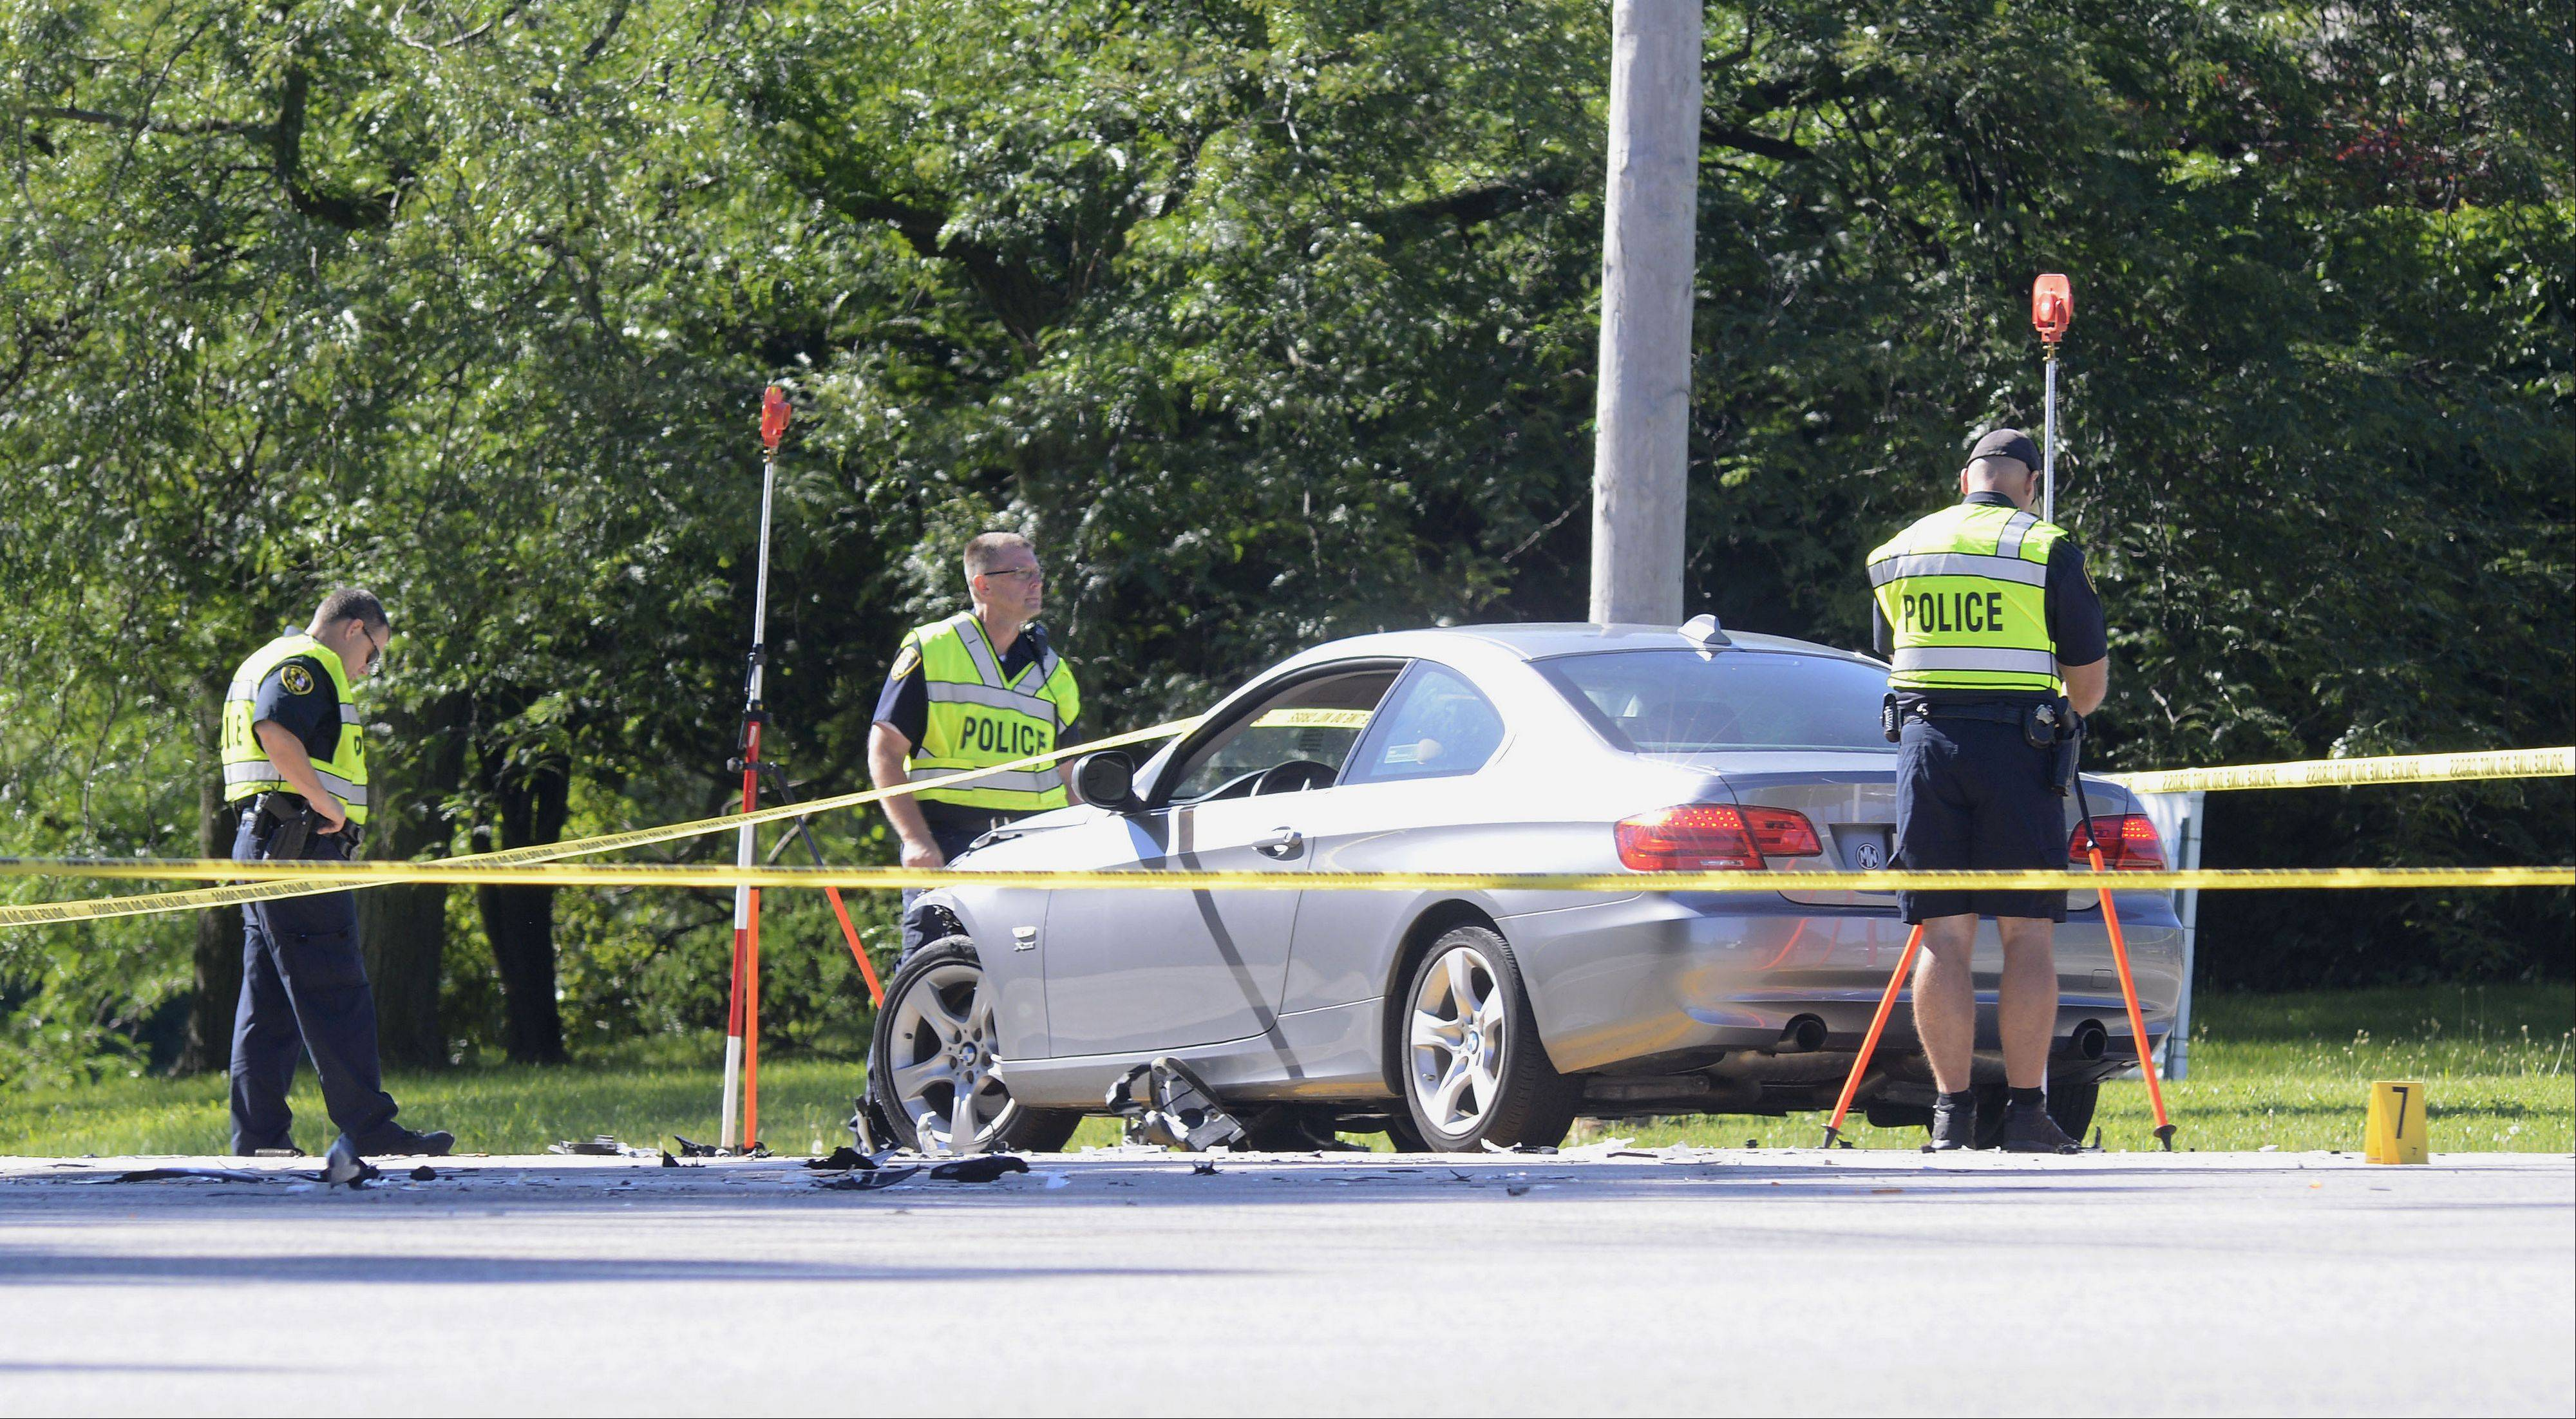 Elgin police take measurements Friday morning at the scene of a car vs. motorcycle crash just east of the intersection of Randall Road and Highland Avenue. Police said a 26-year-old motorcyclist from St. Charles was killed.